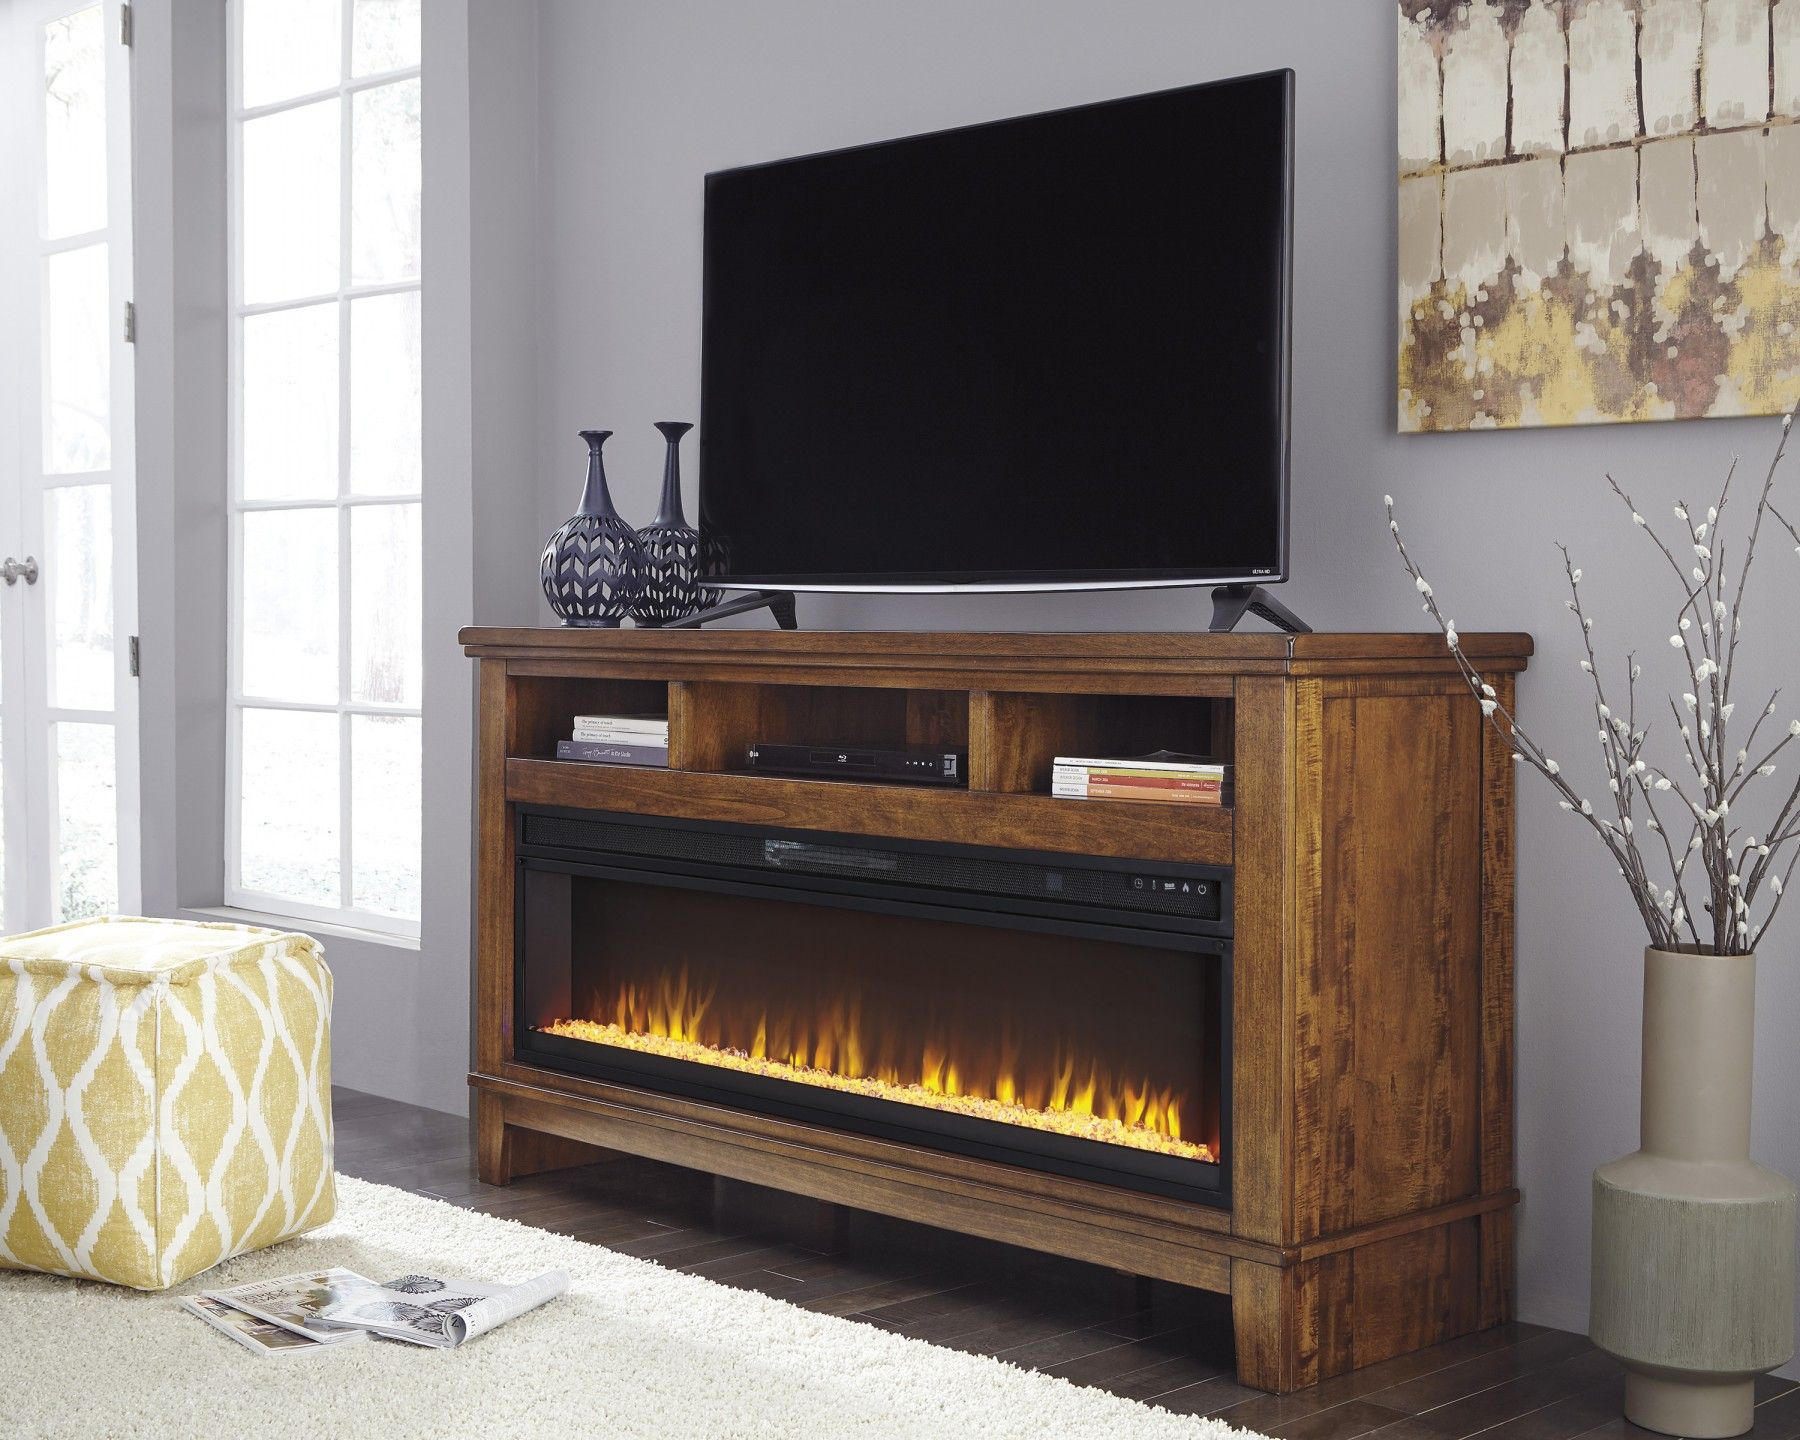 walker by id fireplace chain corner black edison plug jackson index page in product tv category stand name inch